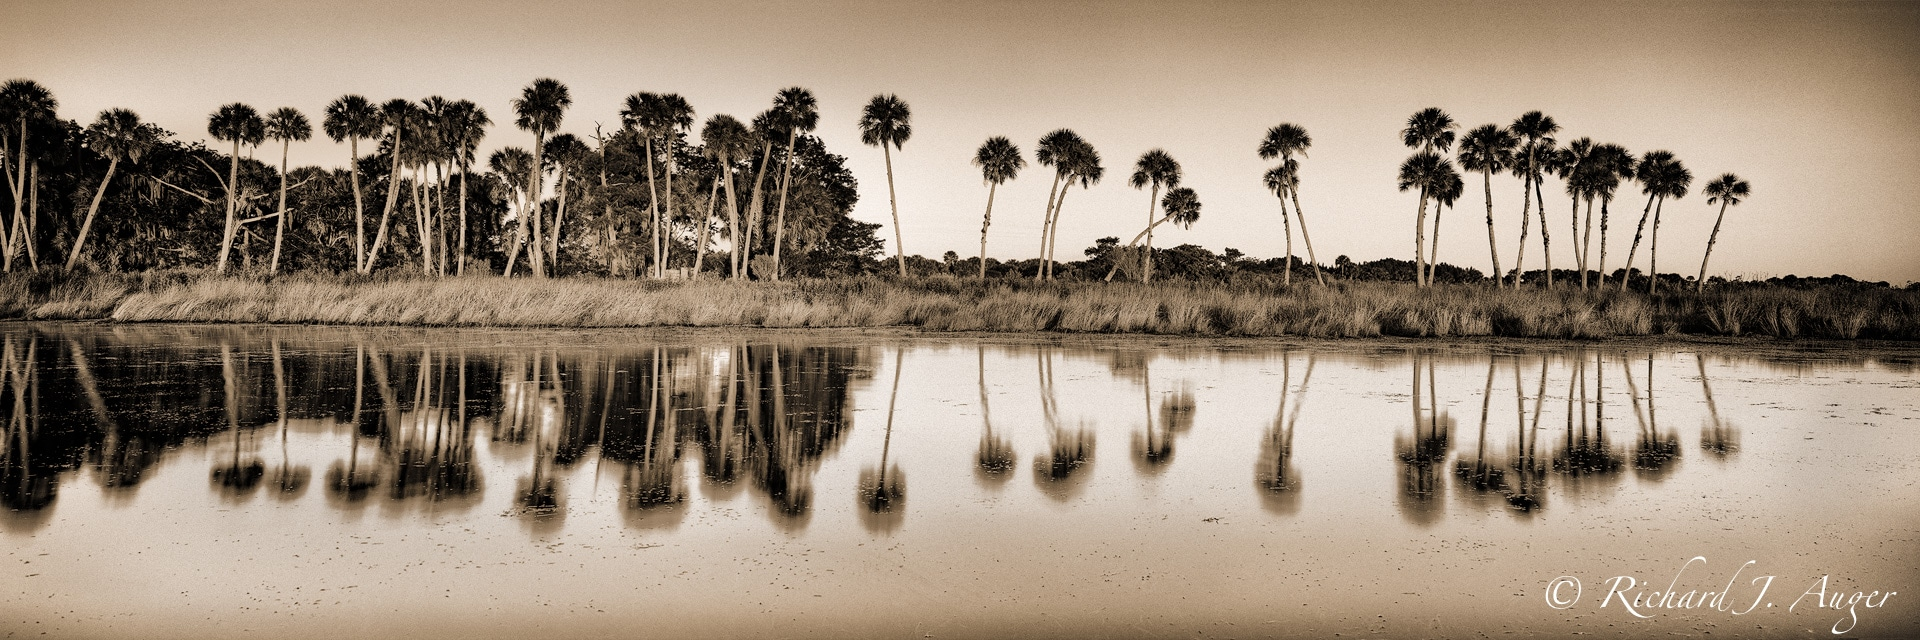 St Johns River, Palm Trees, Reflections, Water, Swamp, vintage, photograph, photographer, landscape, sepia tone, black and white, panorama